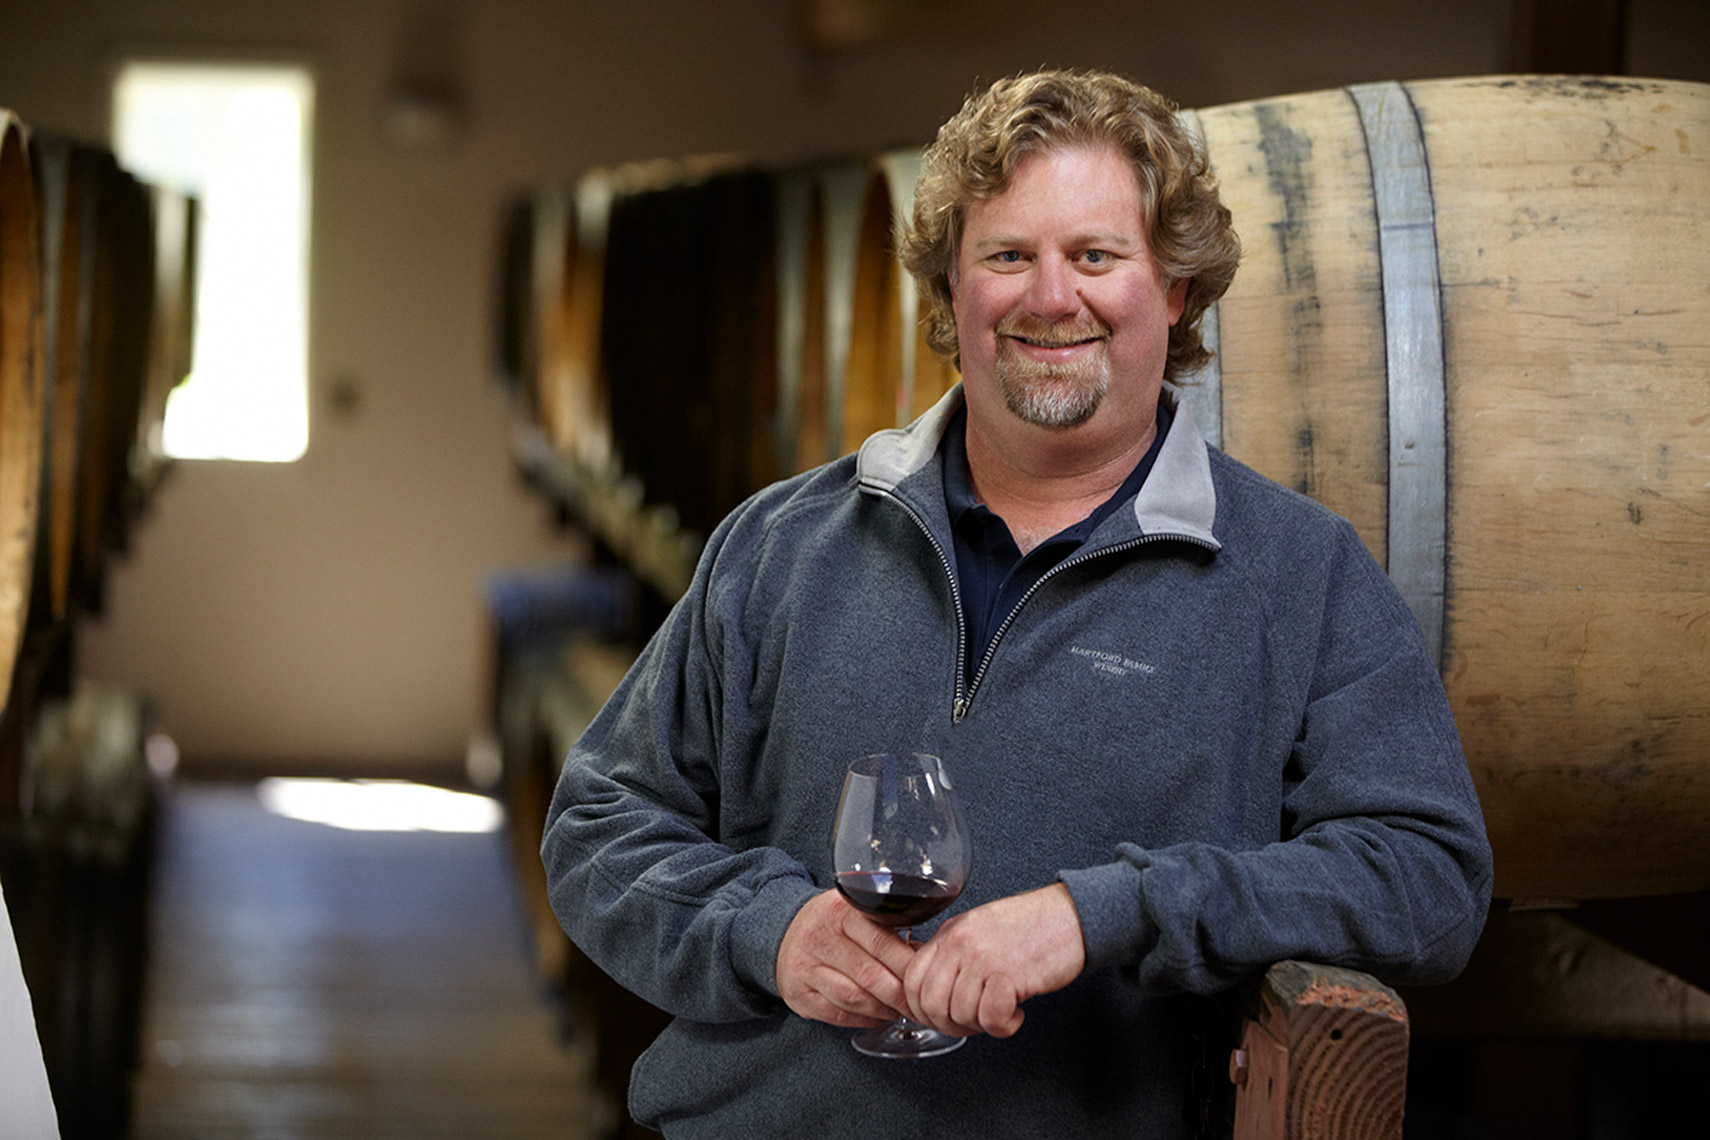 AlanCampbellPhotography, Jeff-Stewart winemaker